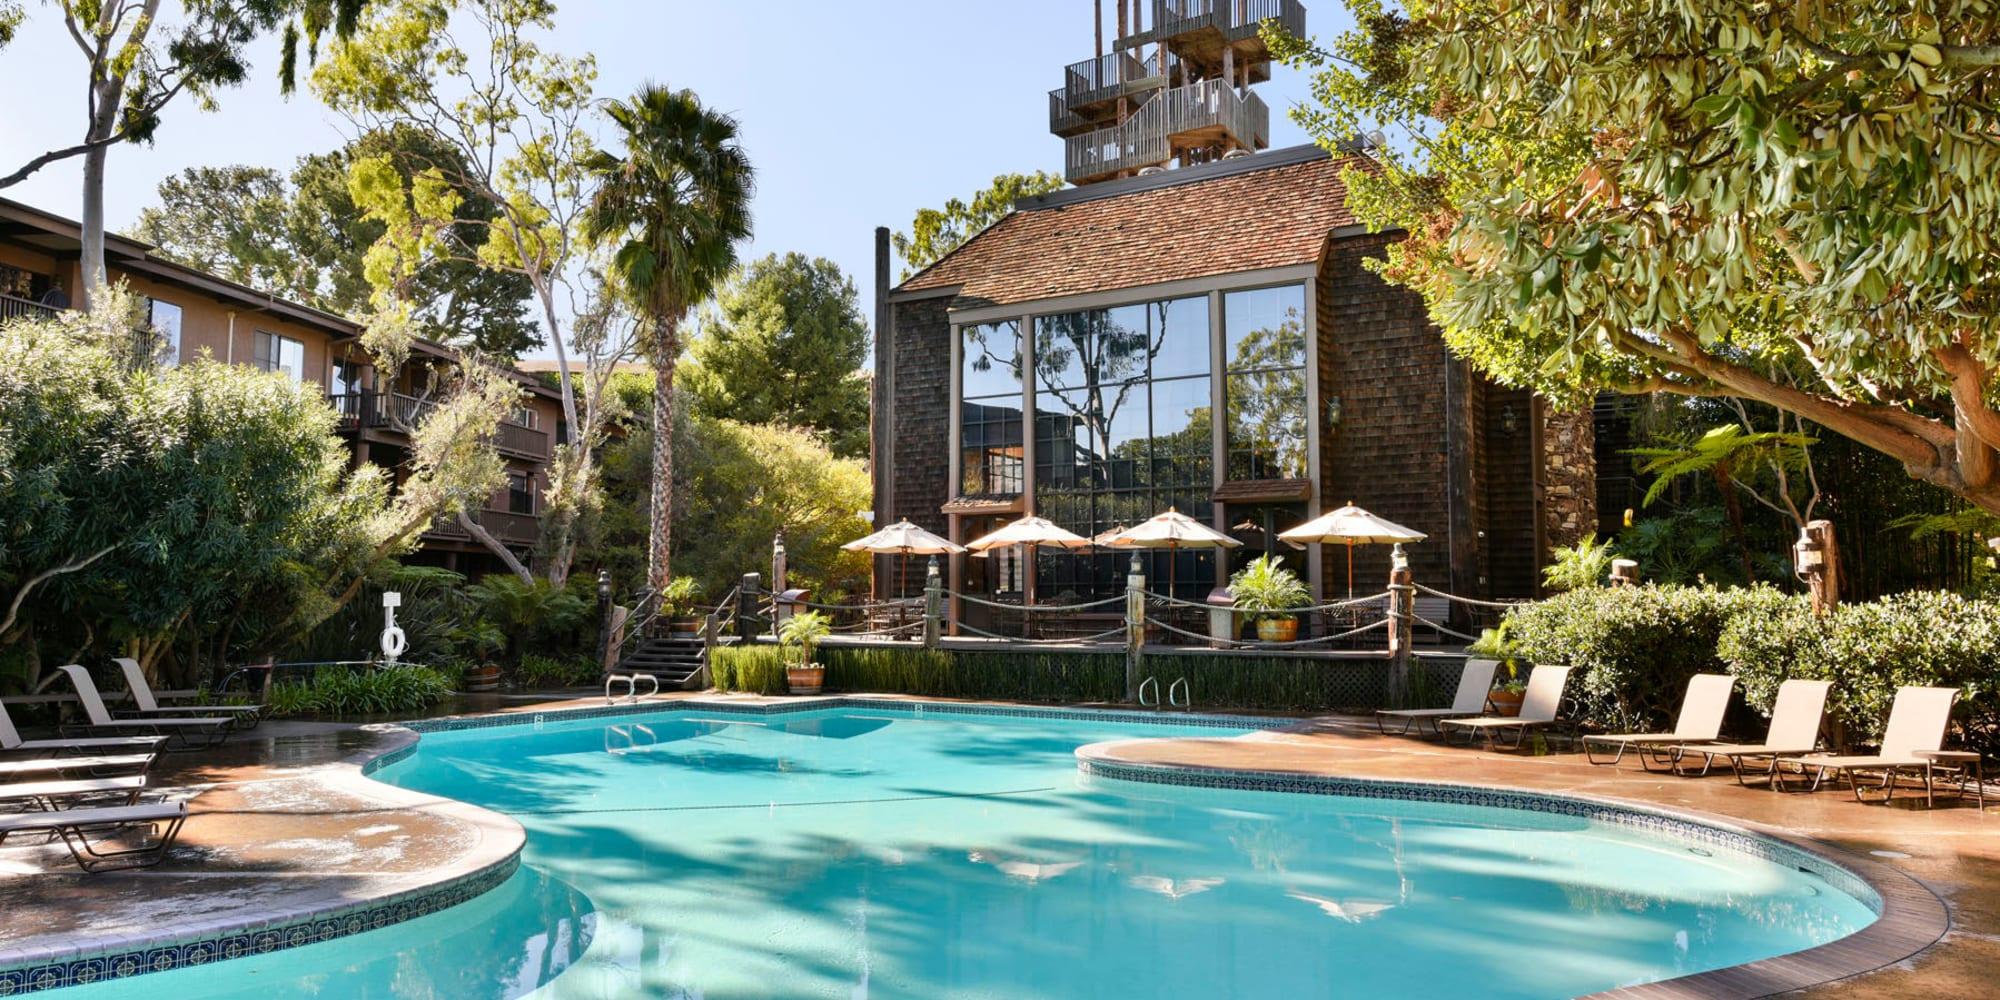 Resort-style swimming pool surrounded by mature trees at Mariners Village in Marina del Rey, California